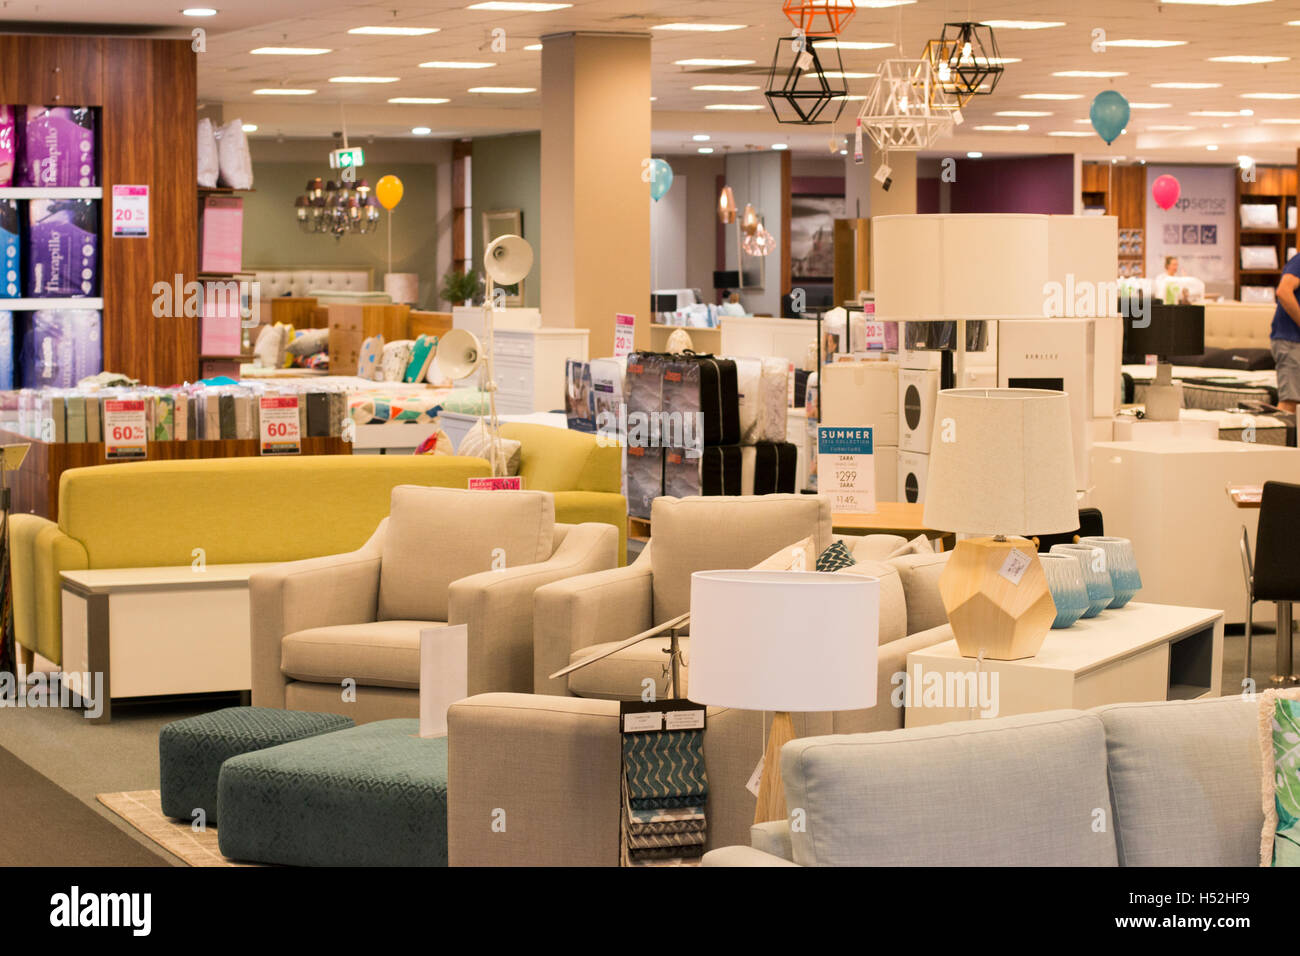 Interior Of A Harvey Norman Retail Store Selling Furniture And Electrical  Items,Sydney,Australia